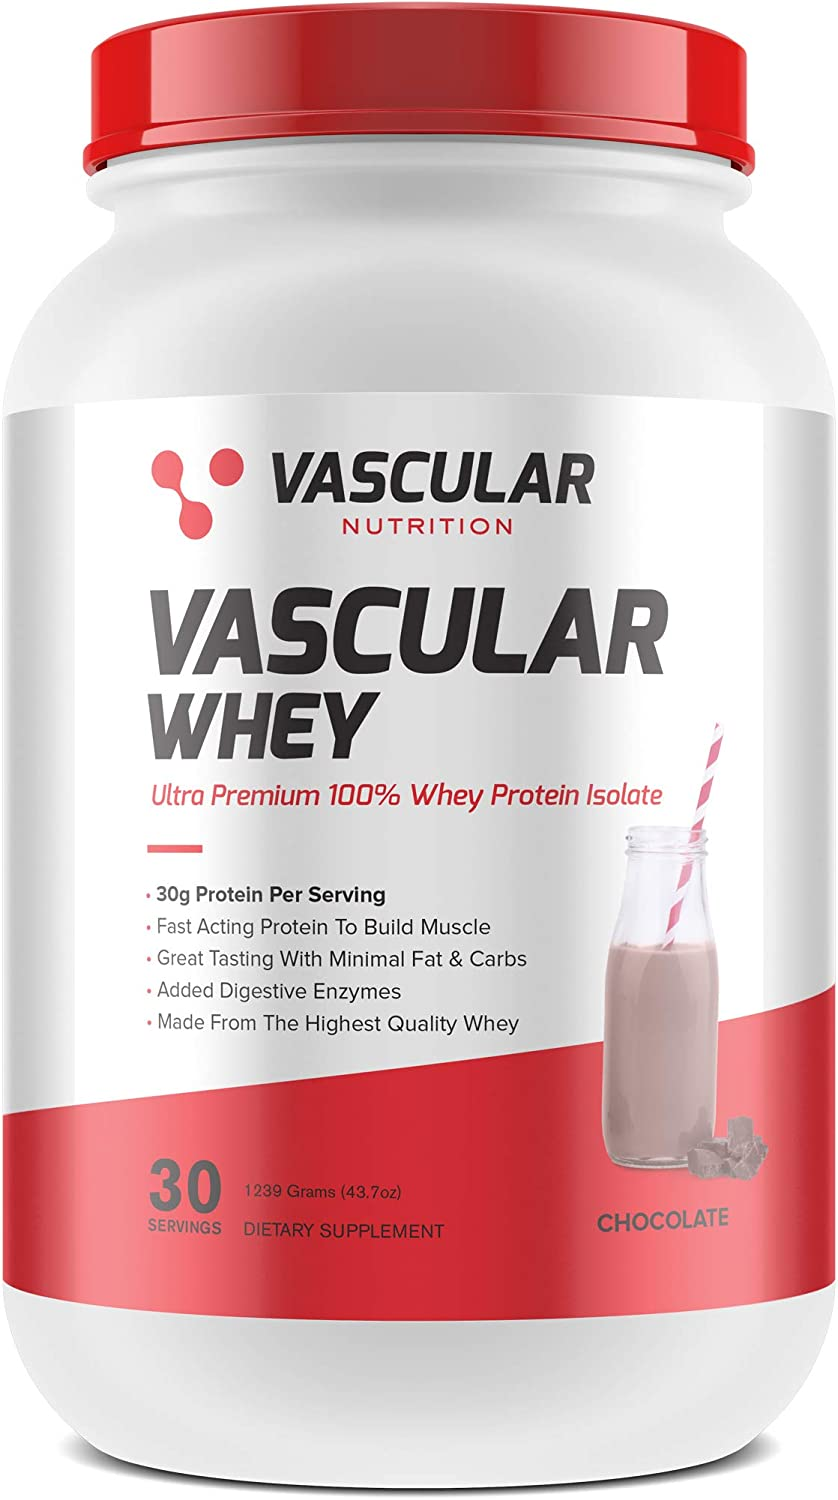 Vascular Nutrition Protein Isolate Great-Tasting Pro Chocolate Excellent wholesale